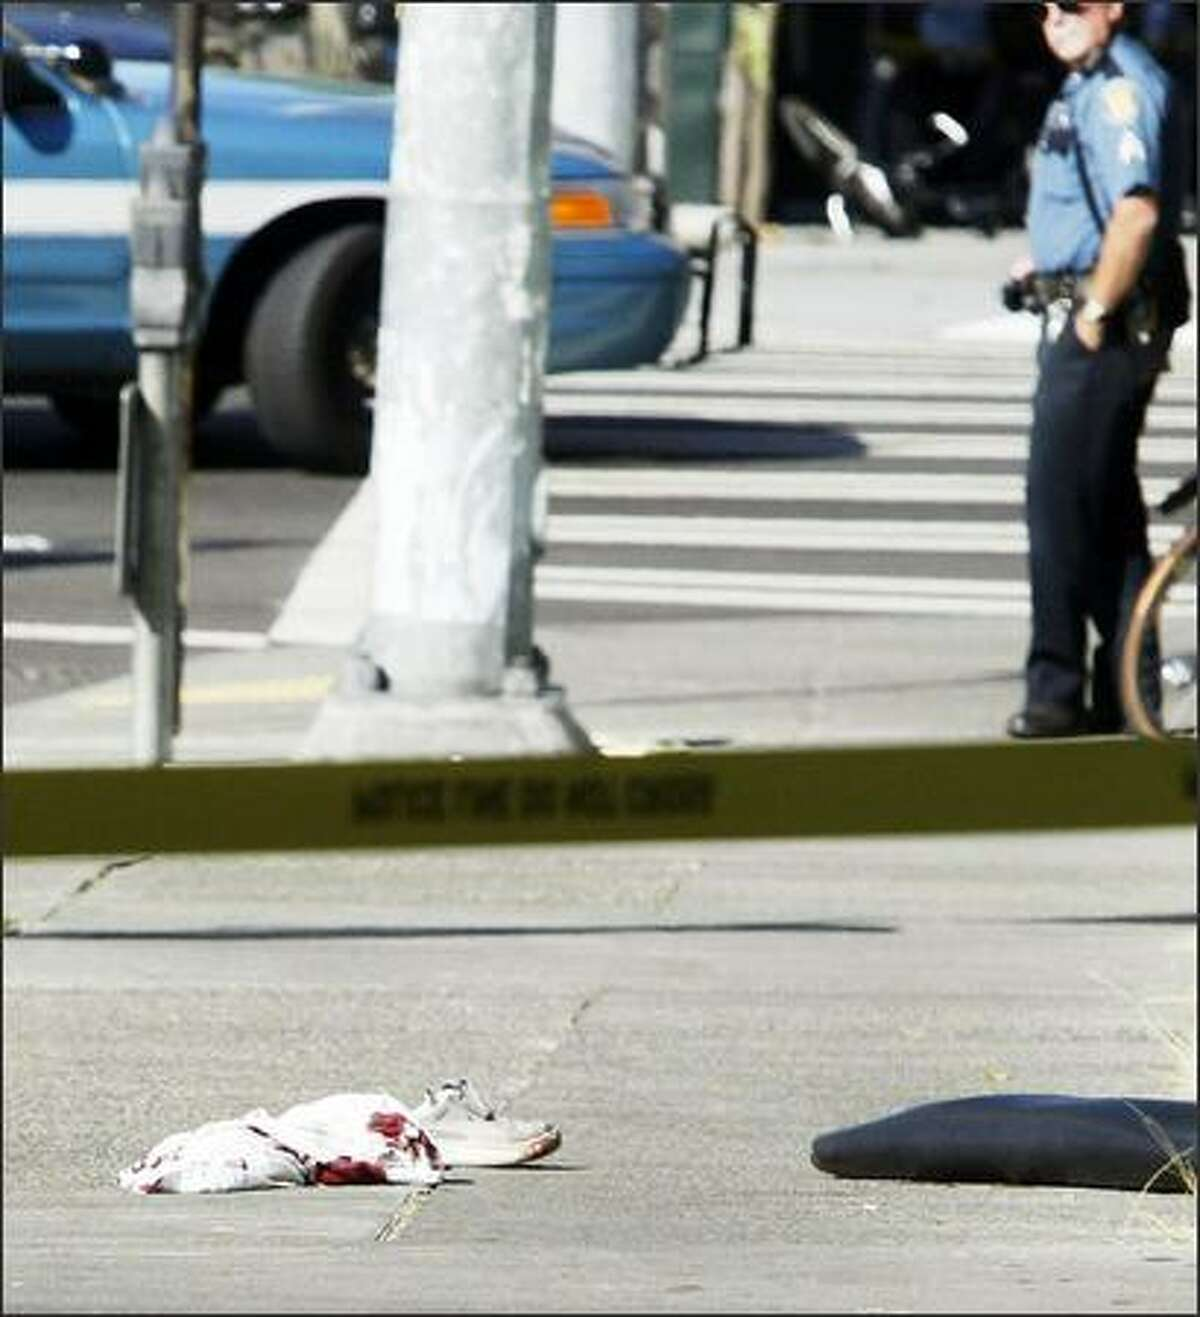 A police officer looks at evidence near the scene of the shootings in Belltown: a shoe and bloody clothing.